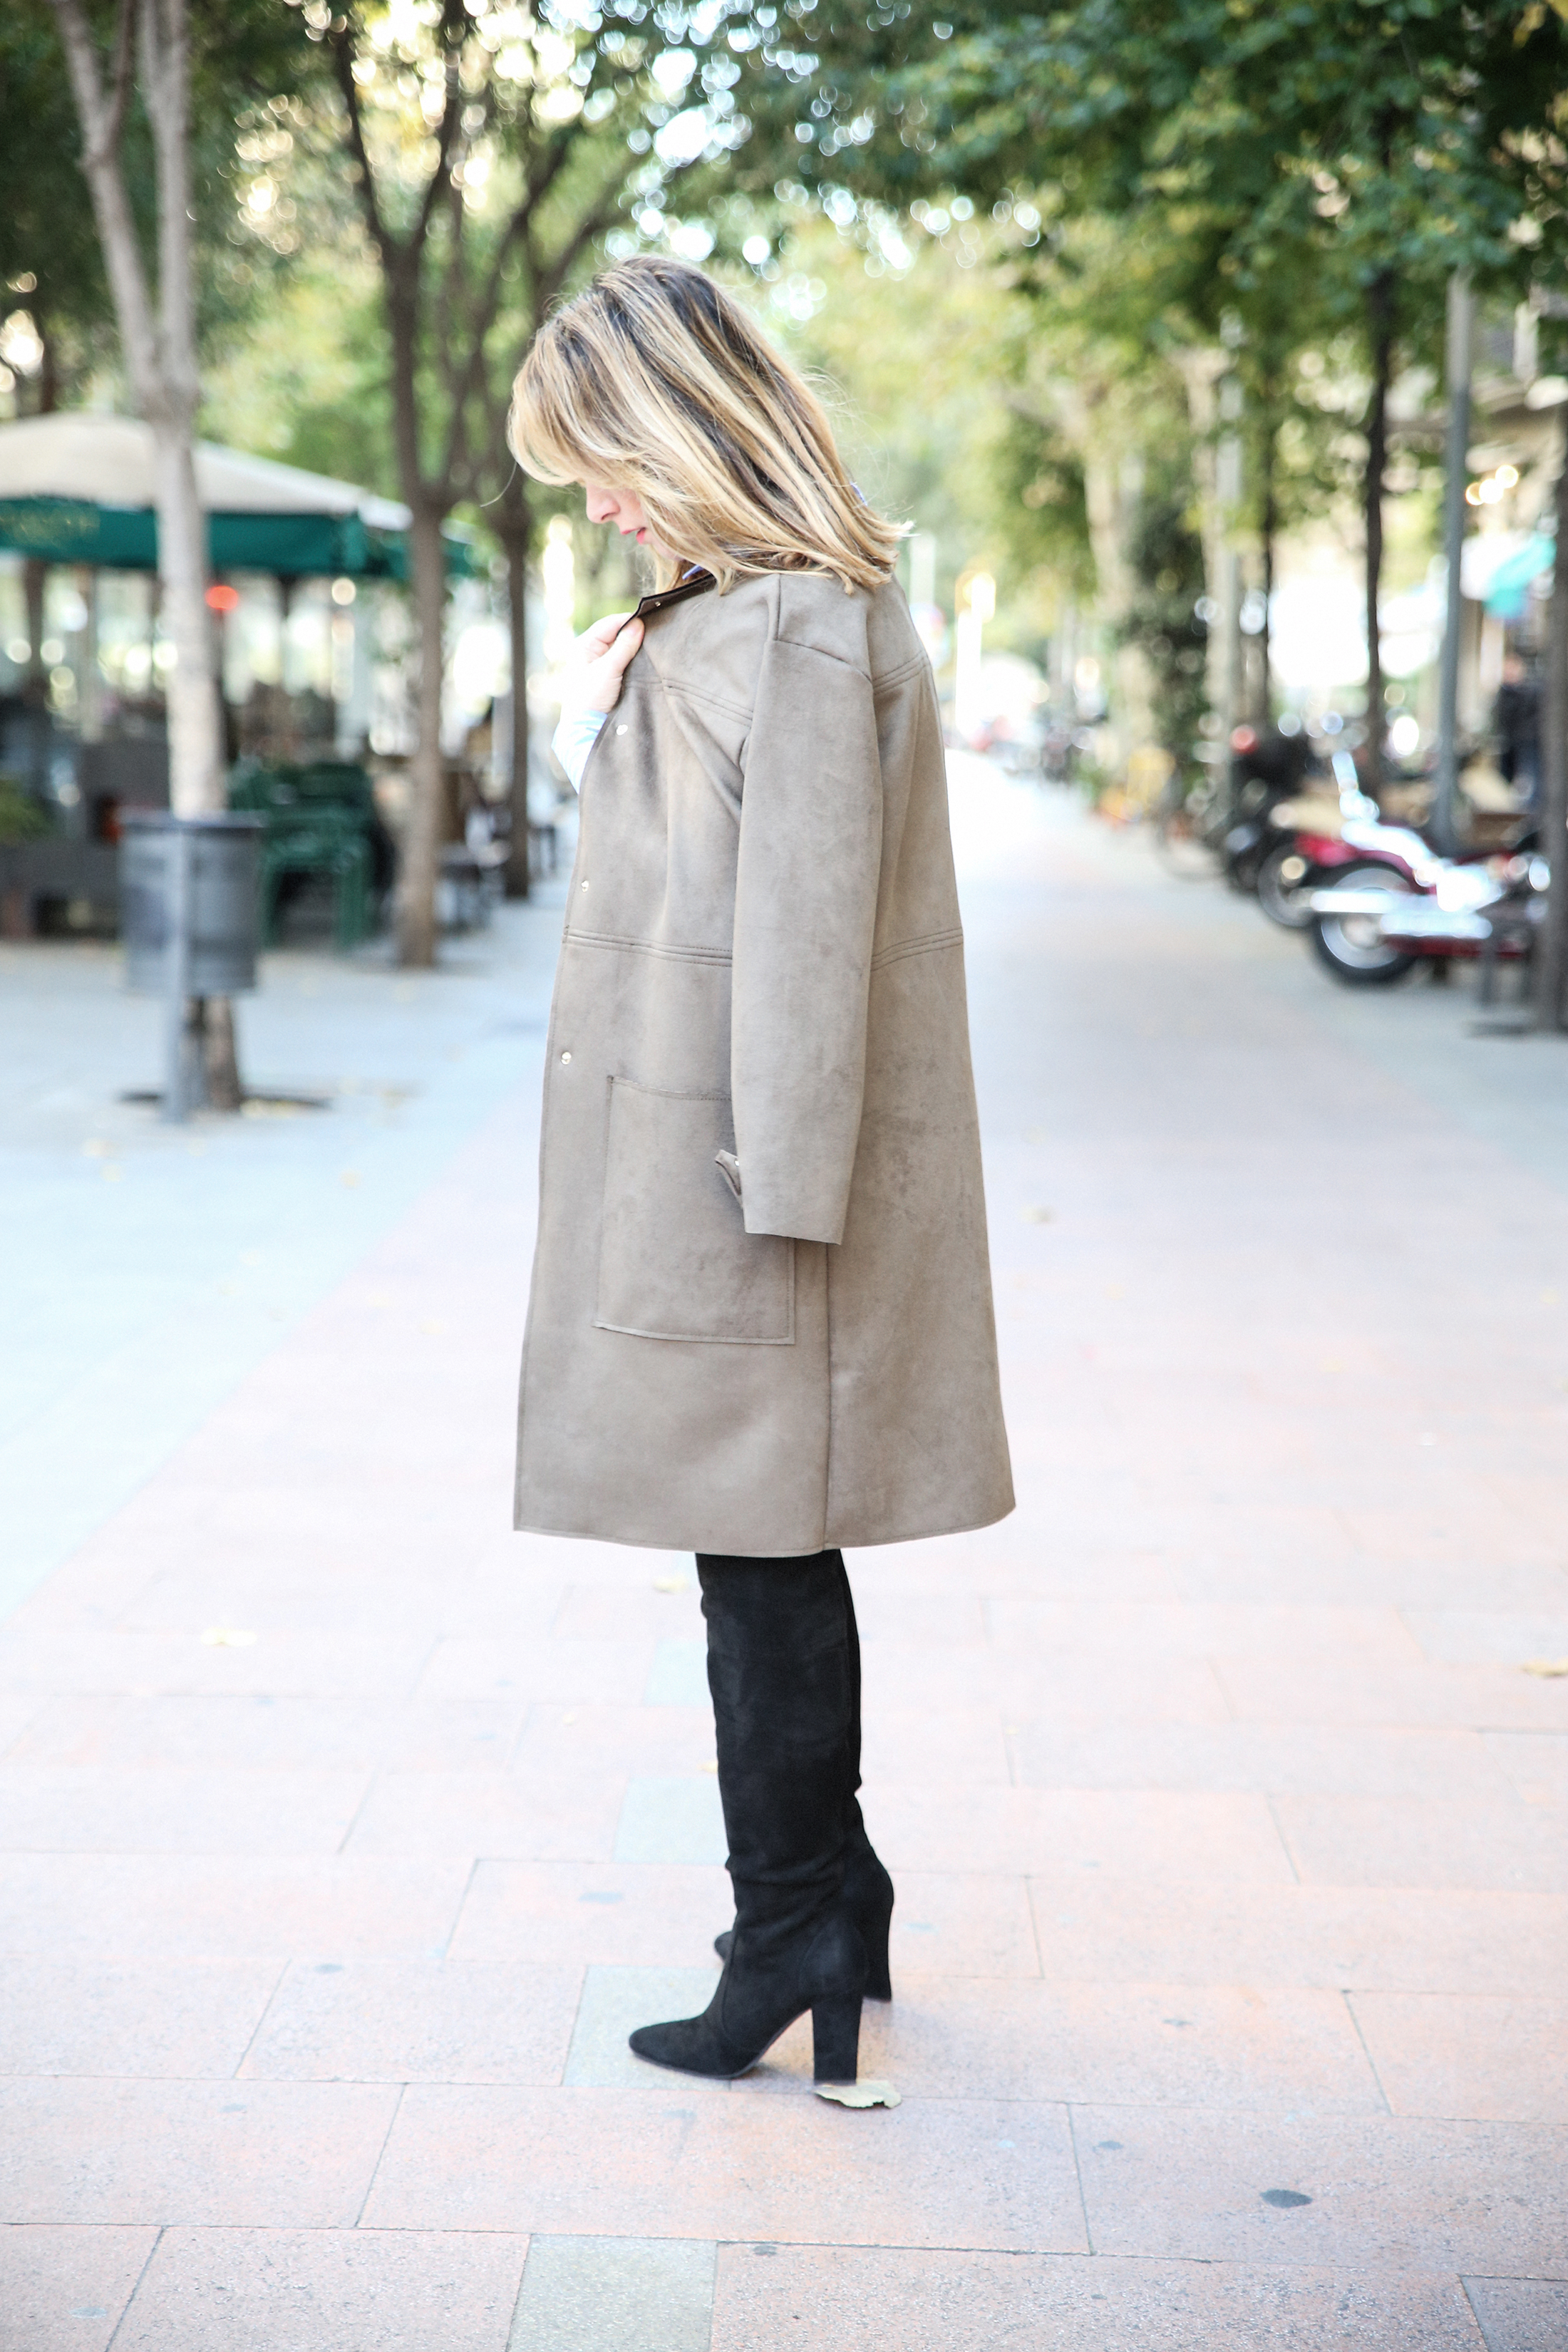 Long Coat & Knee High Boots